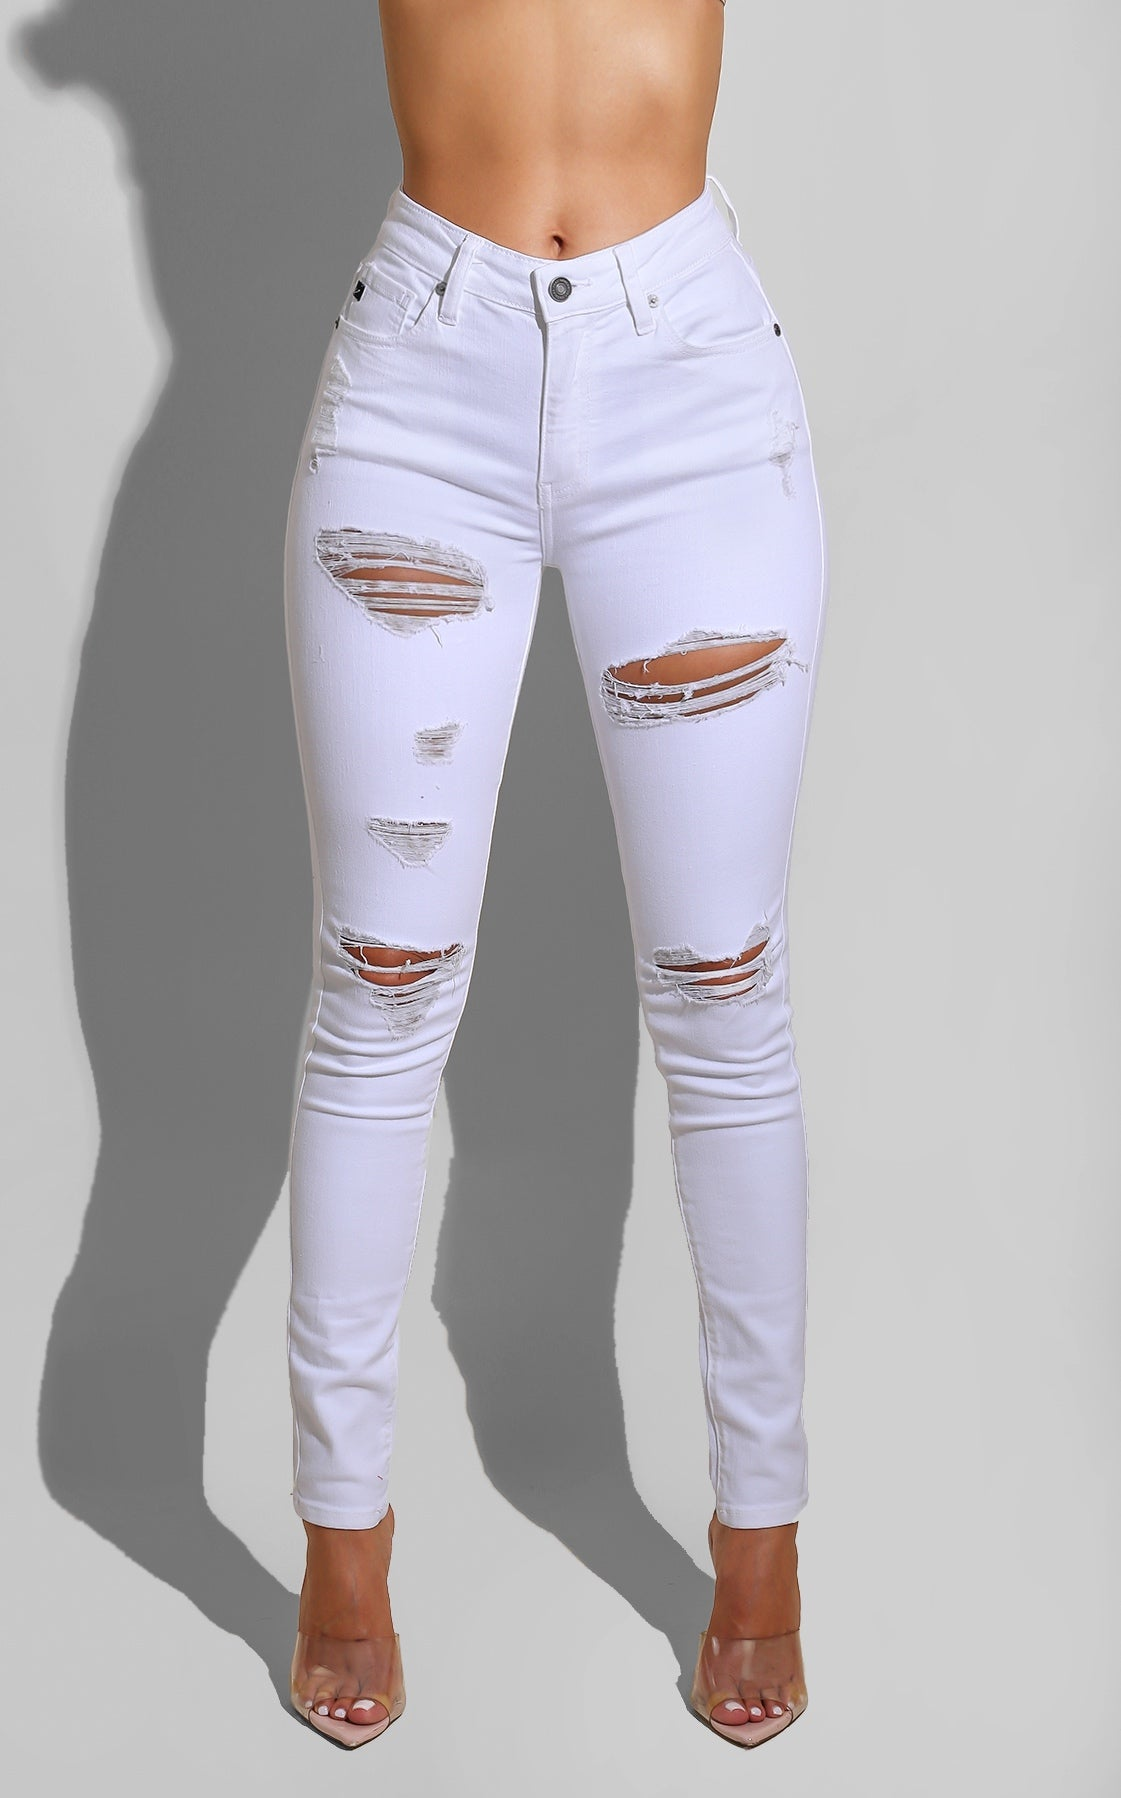 Hot White Denim